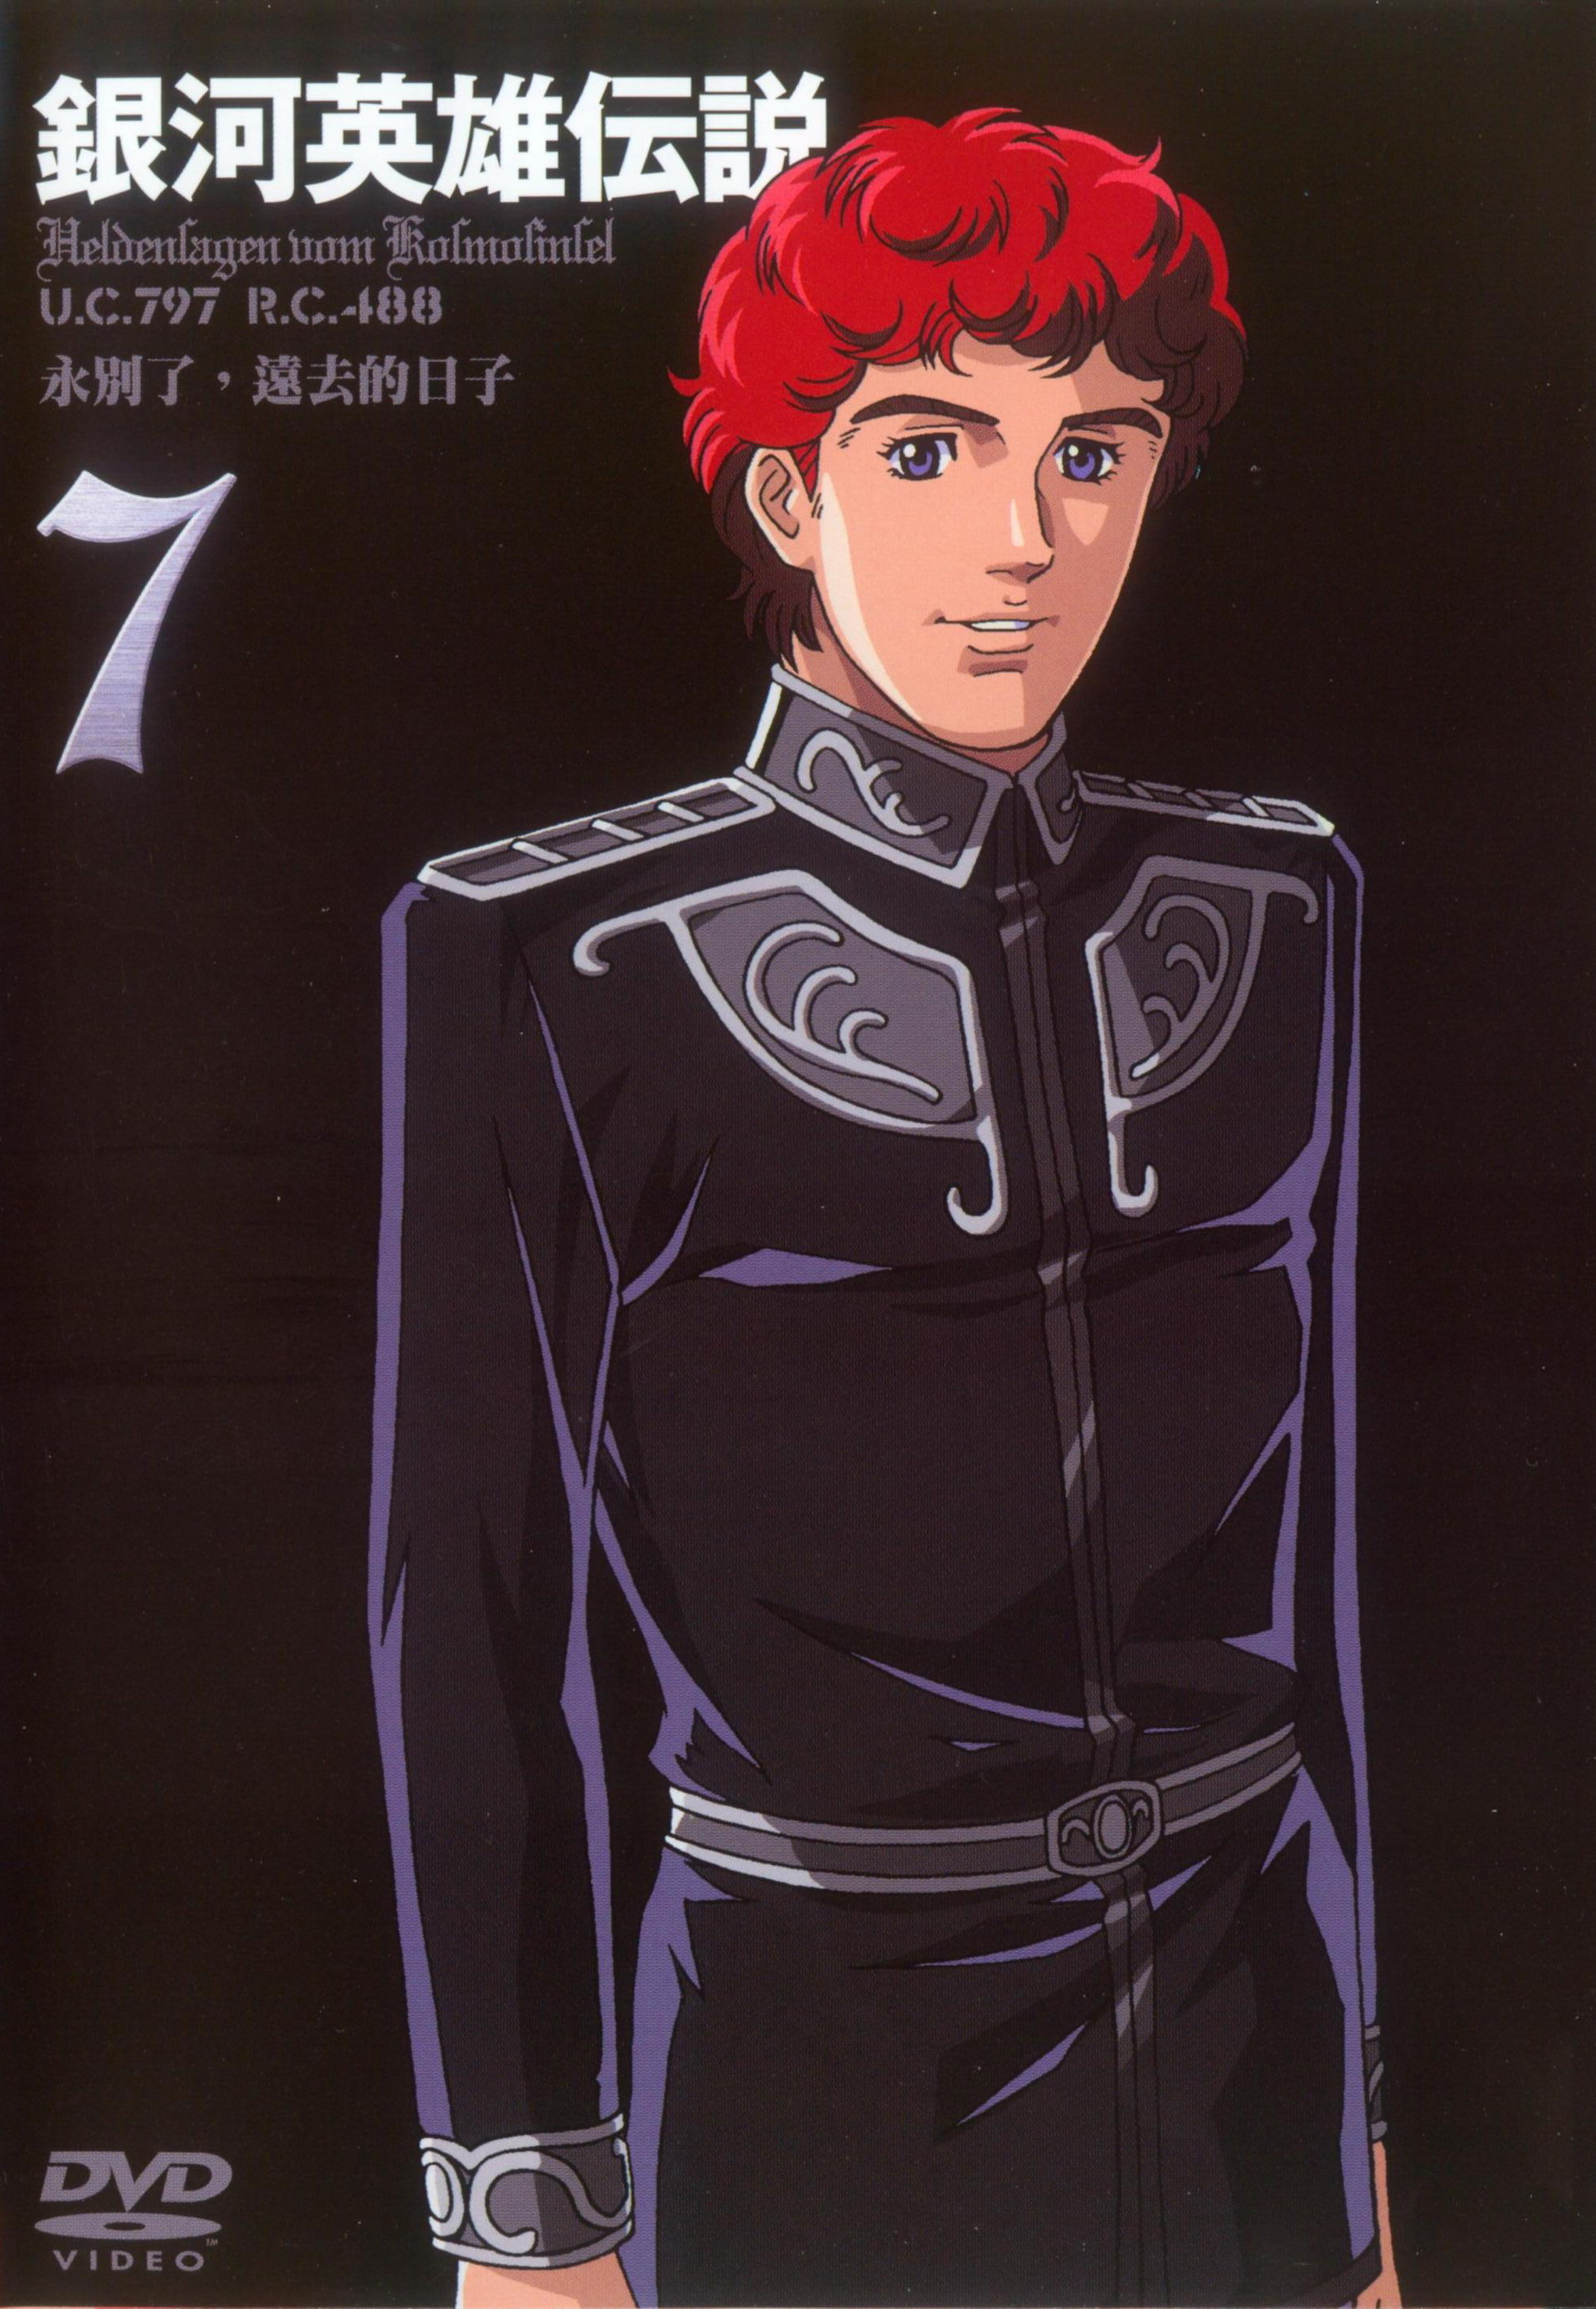 Siegfried Kircheis - Gineipaedia, the Legend of Galactic Heroes wiki